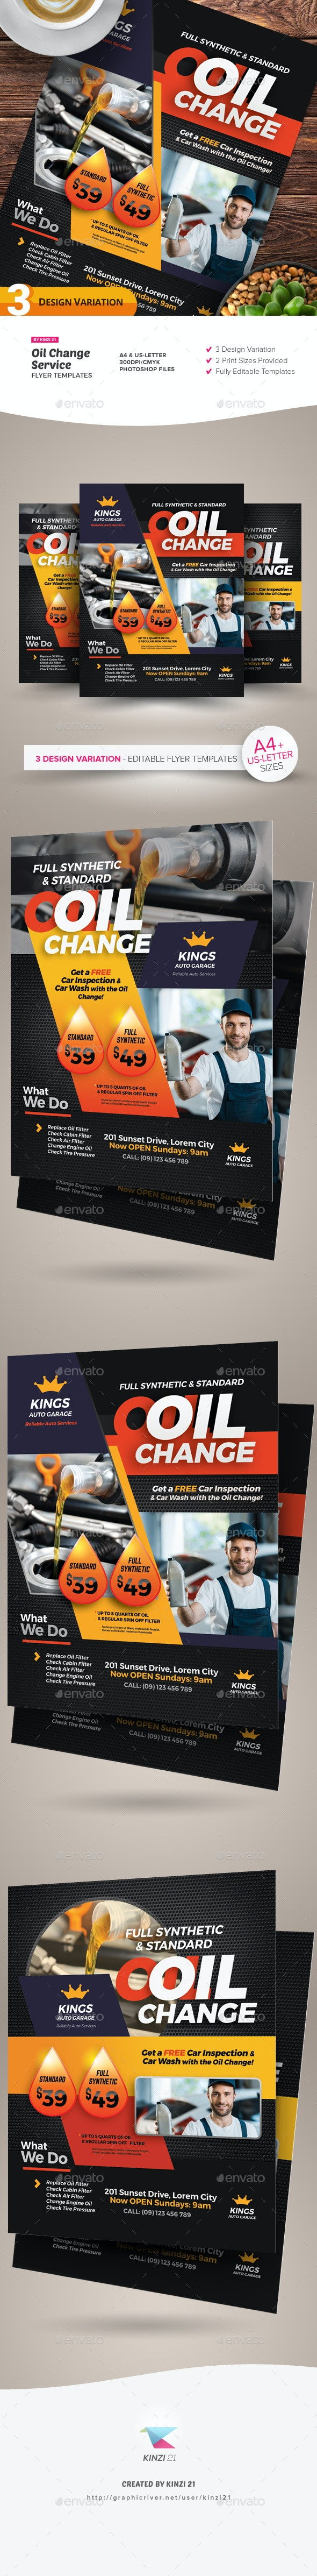 Oil Change Service Flyer Templates - Corporate Flyers